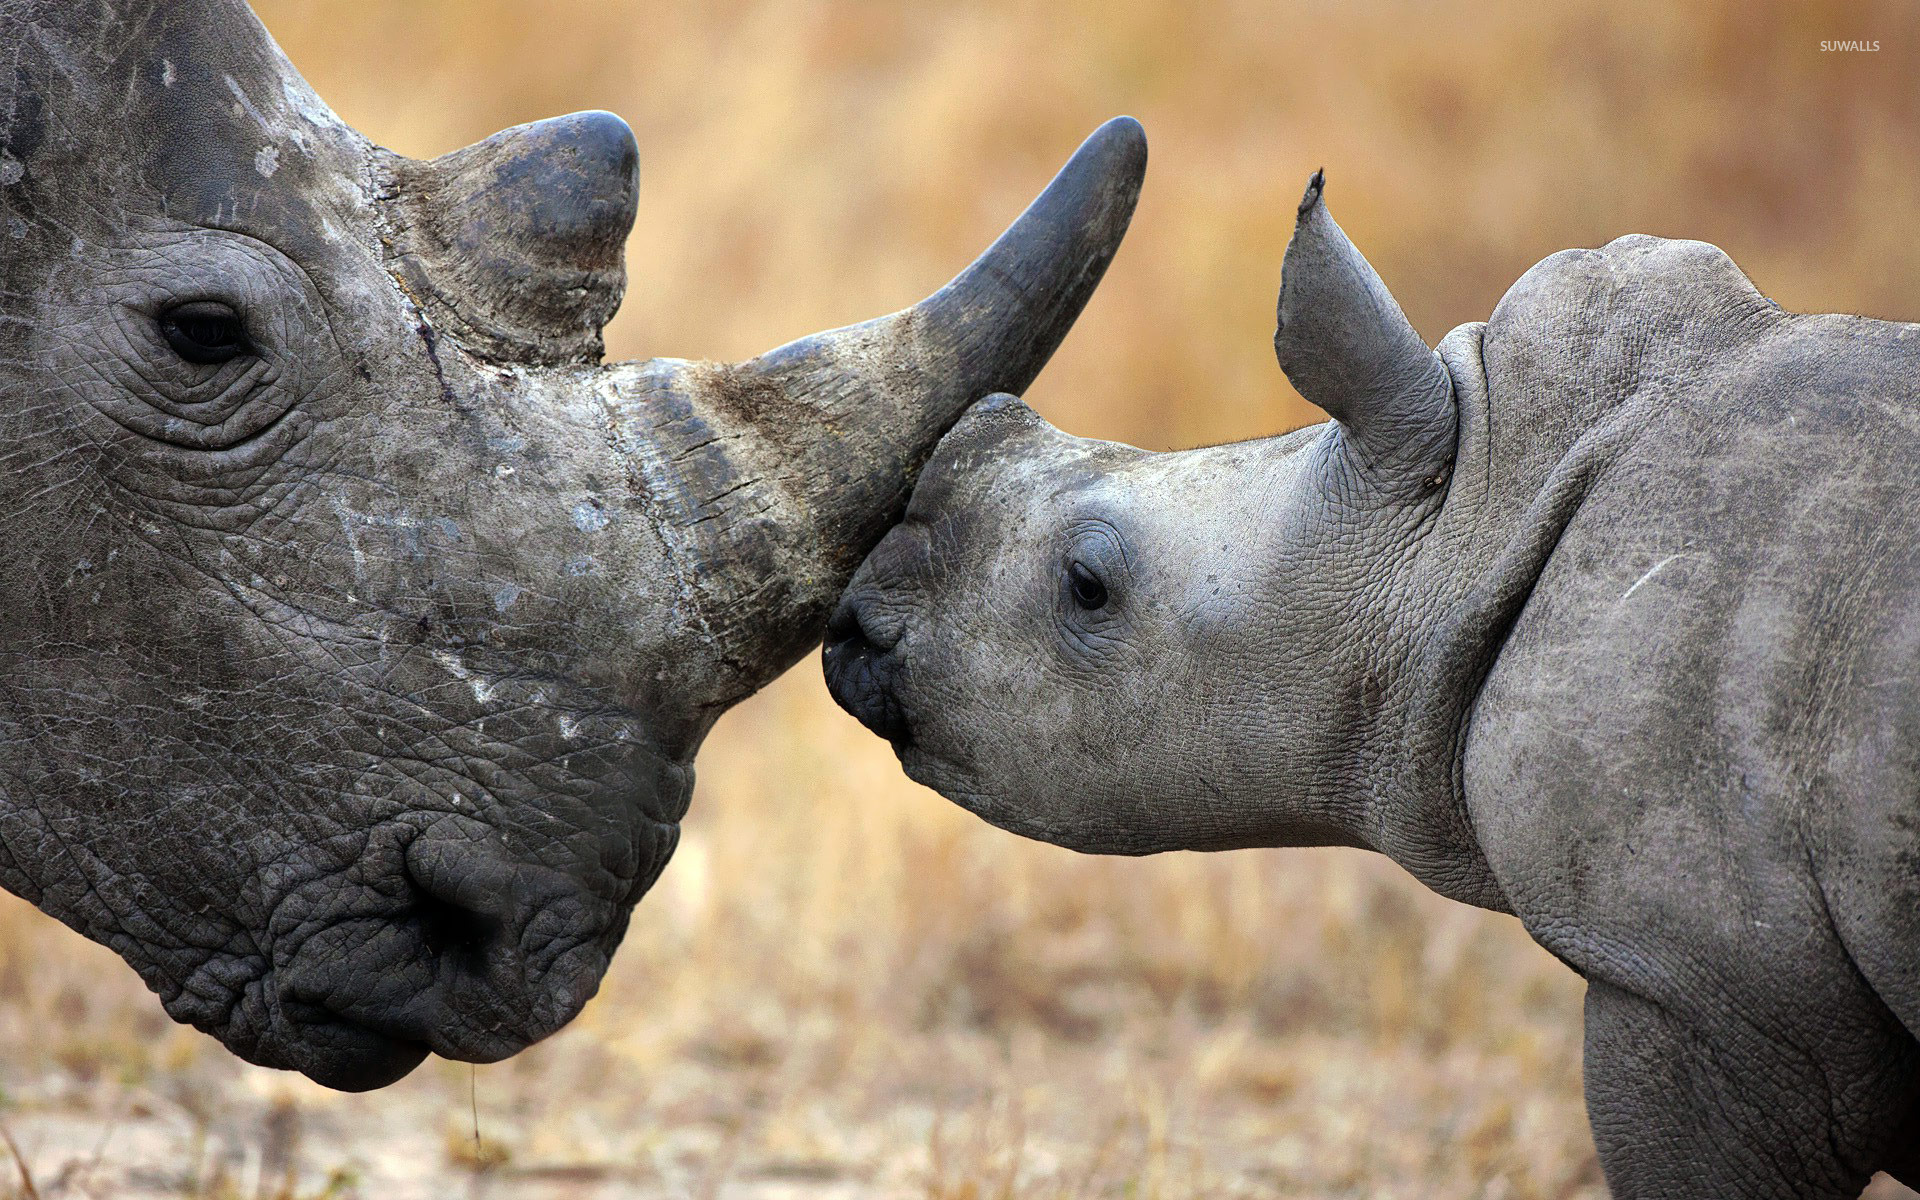 Rhinoceros with calf wallpaper - Animal wallpapers - #19554